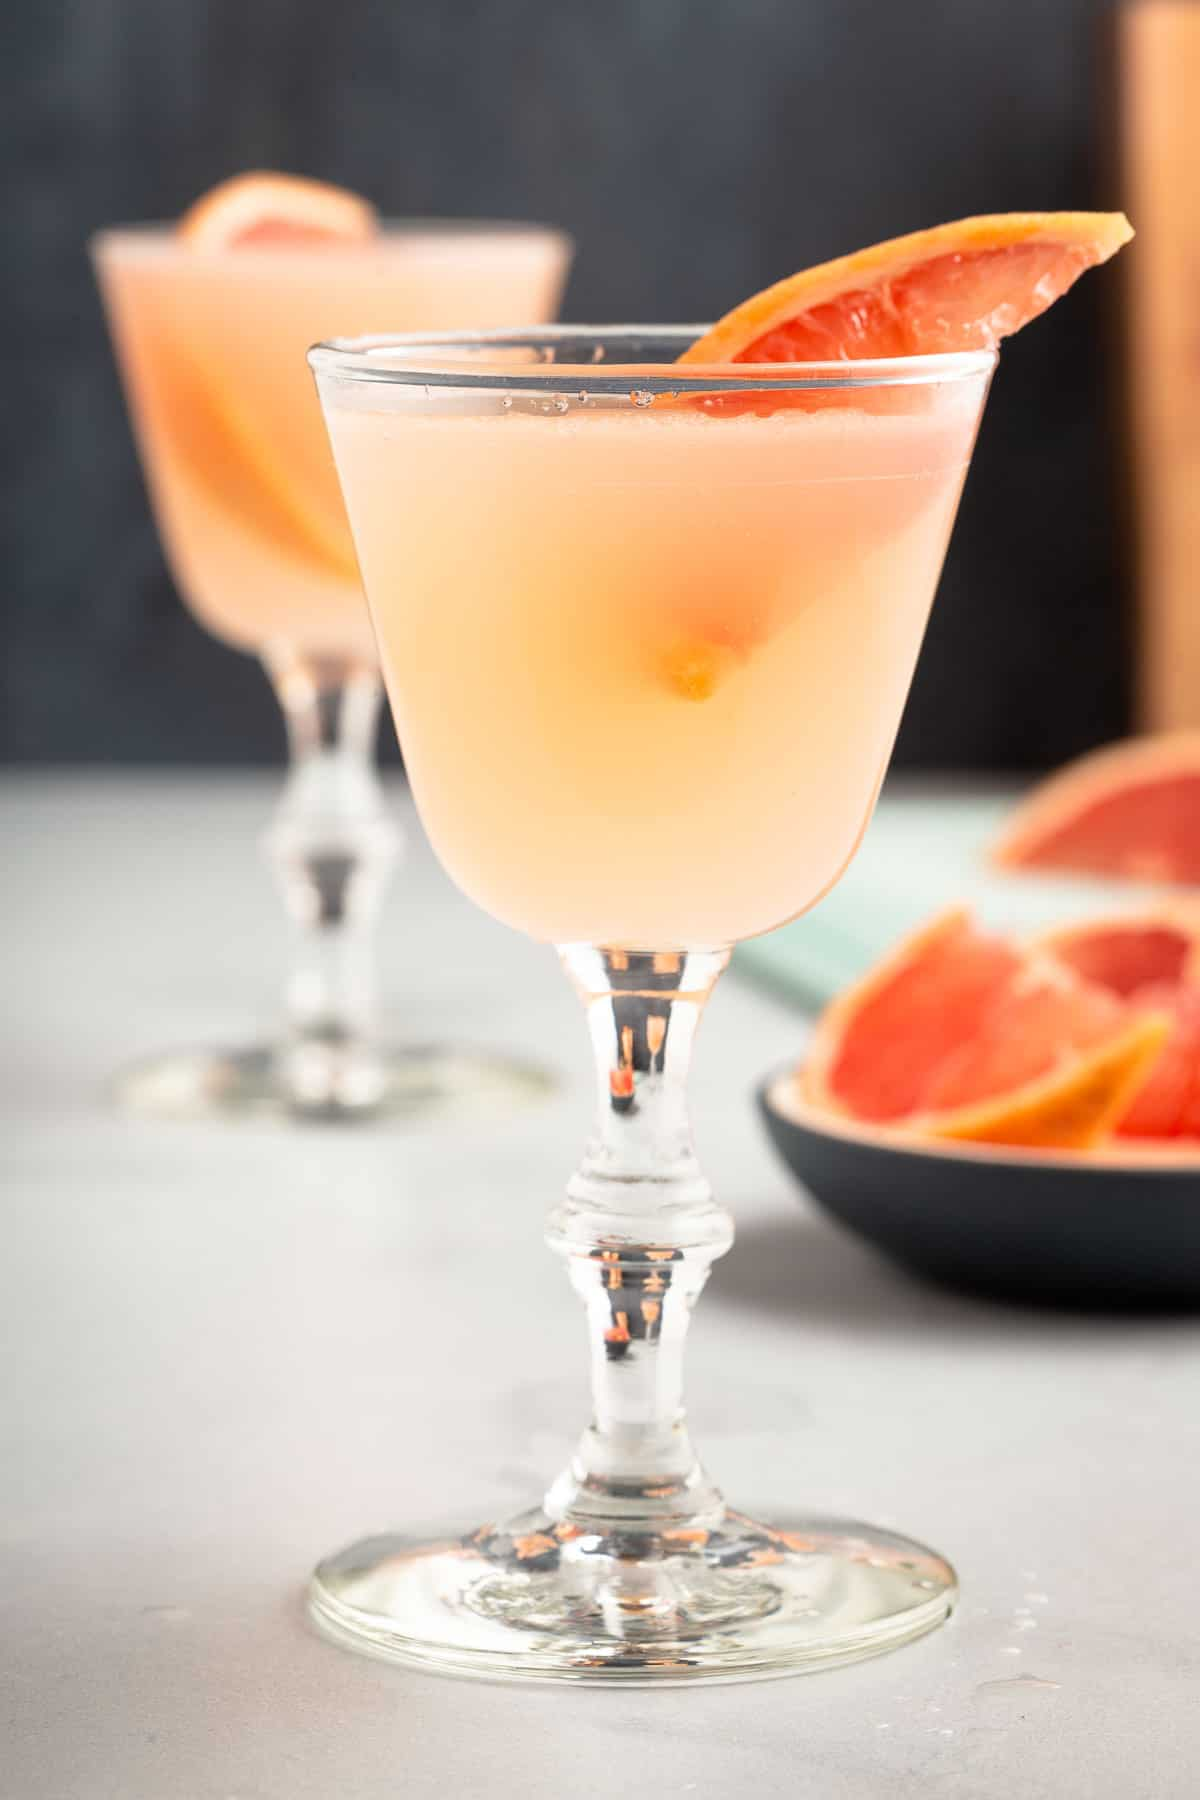 pink cocktail in a stemmed glass garnished with a slice of grapefruit